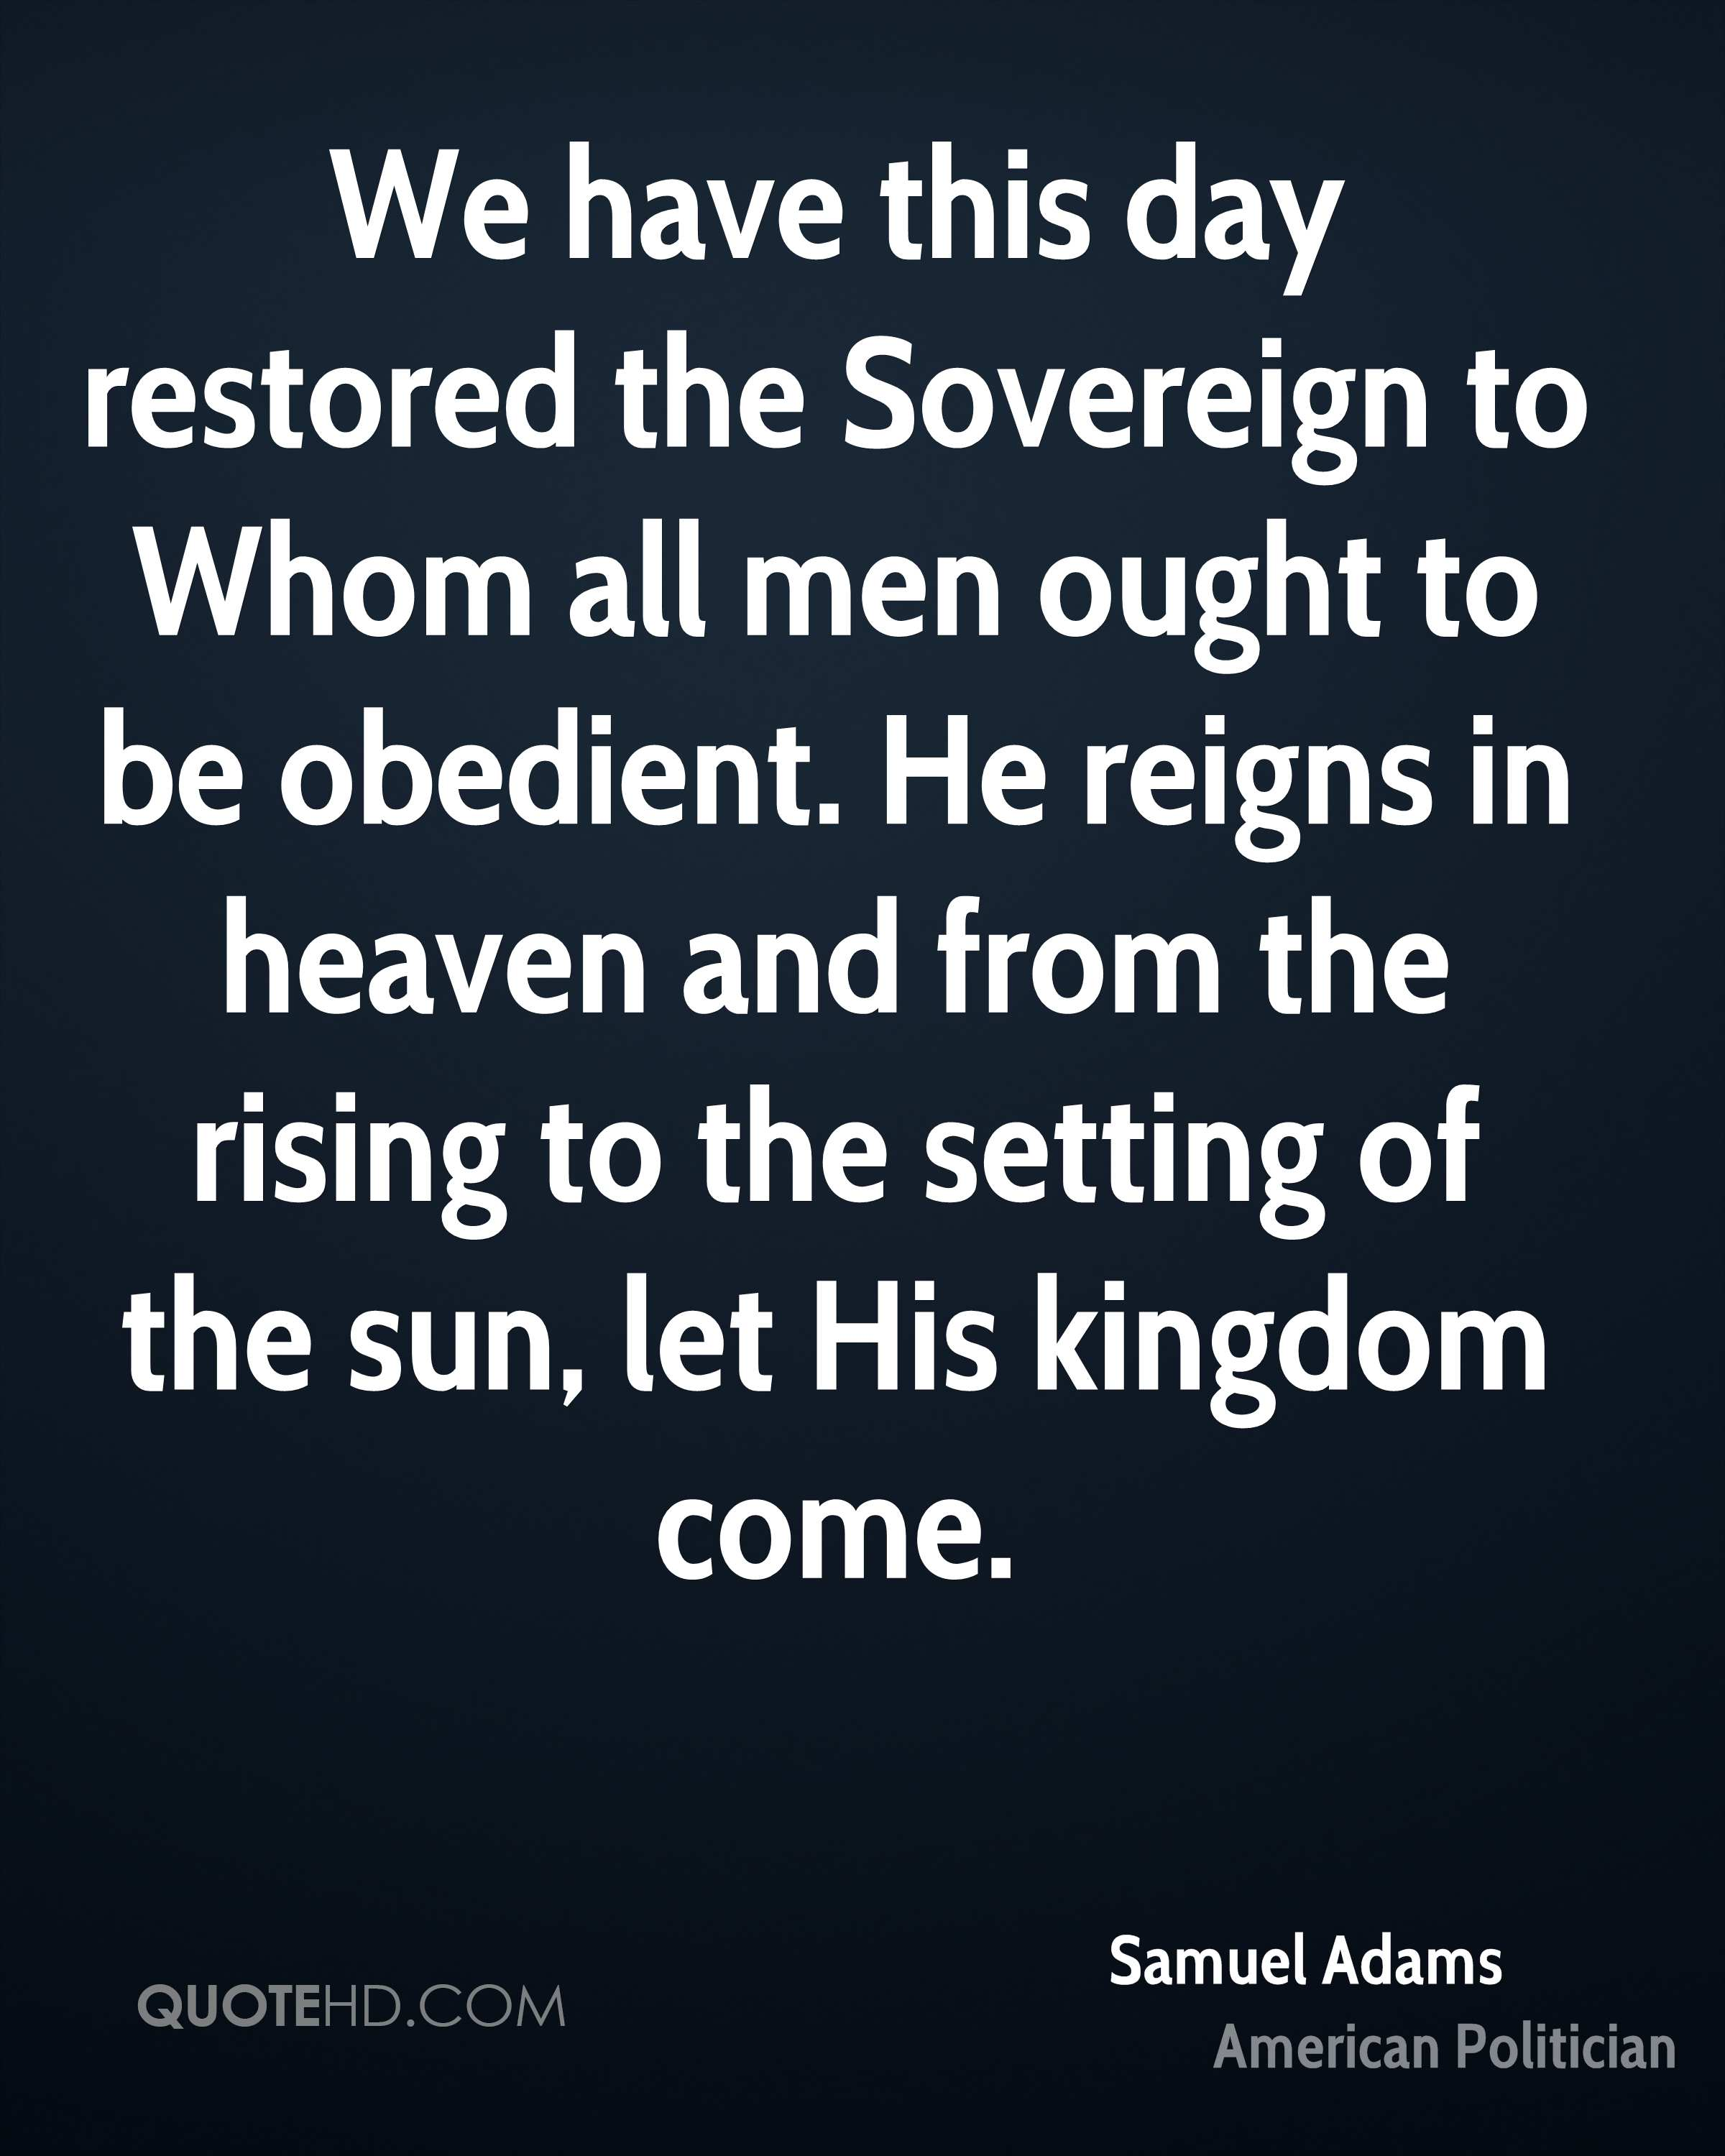 We have this day restored the Sovereign to Whom all men ought to be obedient. He reigns in heaven and from the rising to the setting of the sun, let His kingdom come.